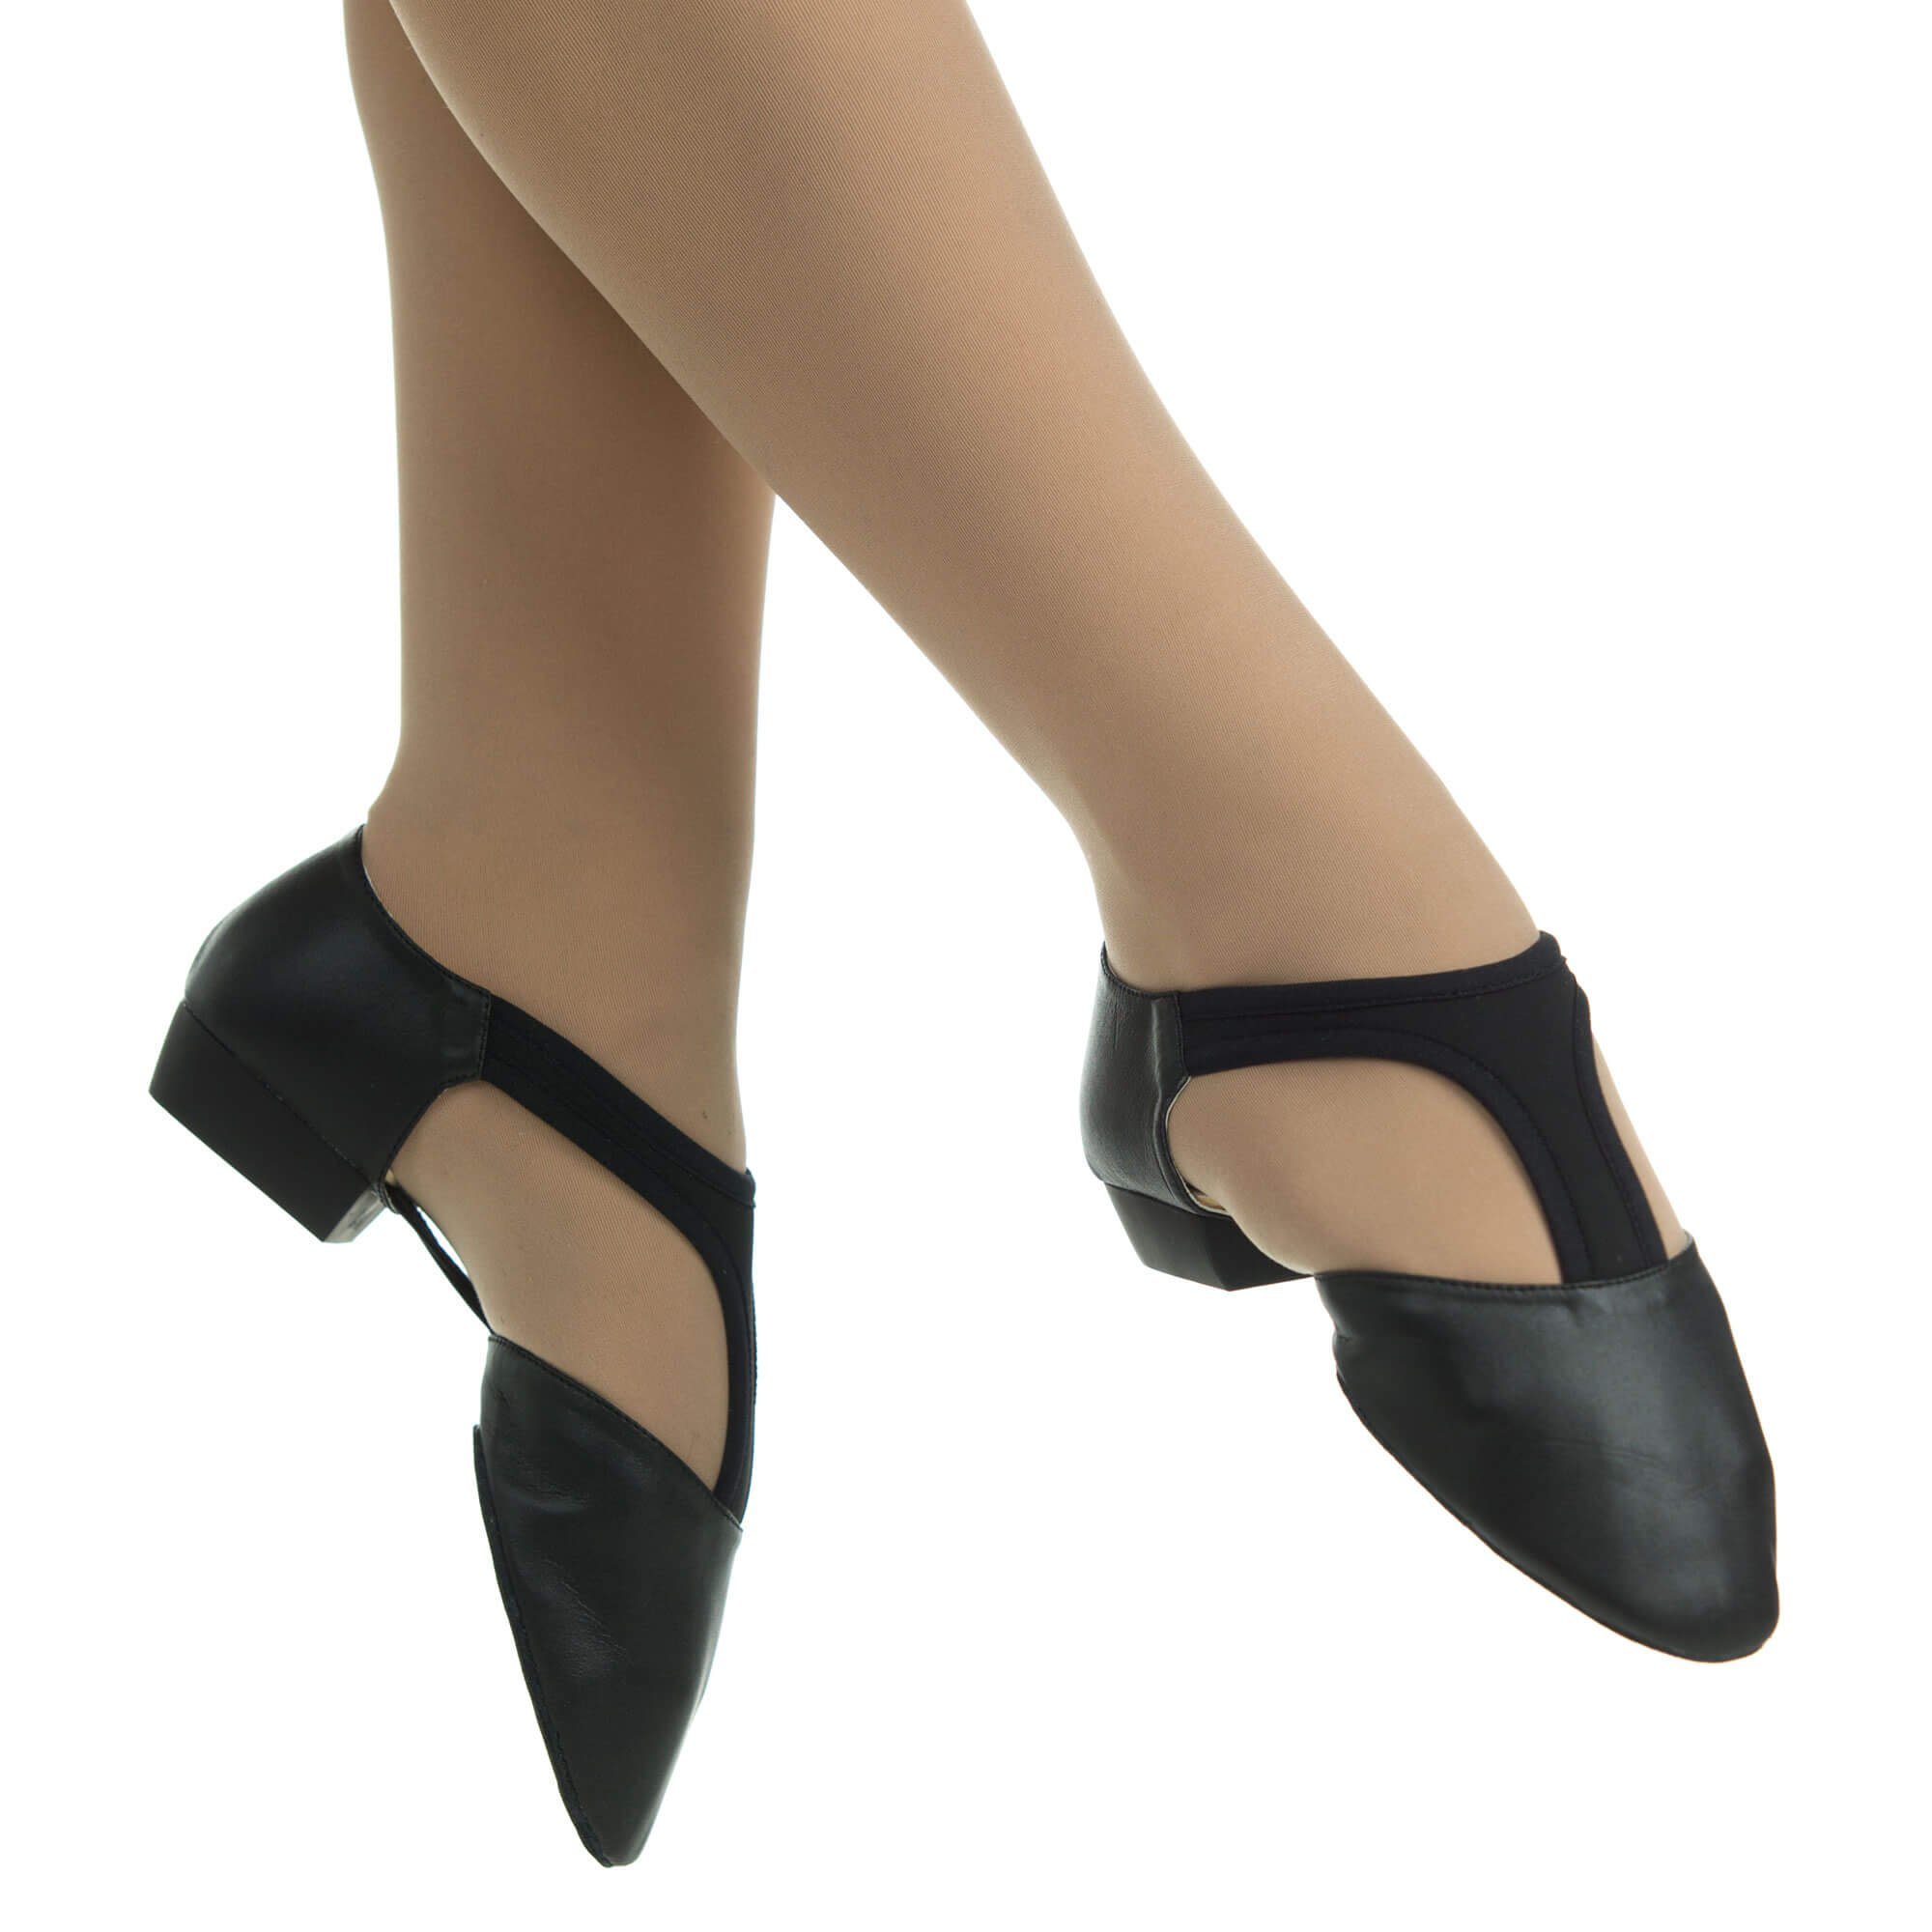 Danzcue Adult Leather Grecian Sandal Dance Shoes